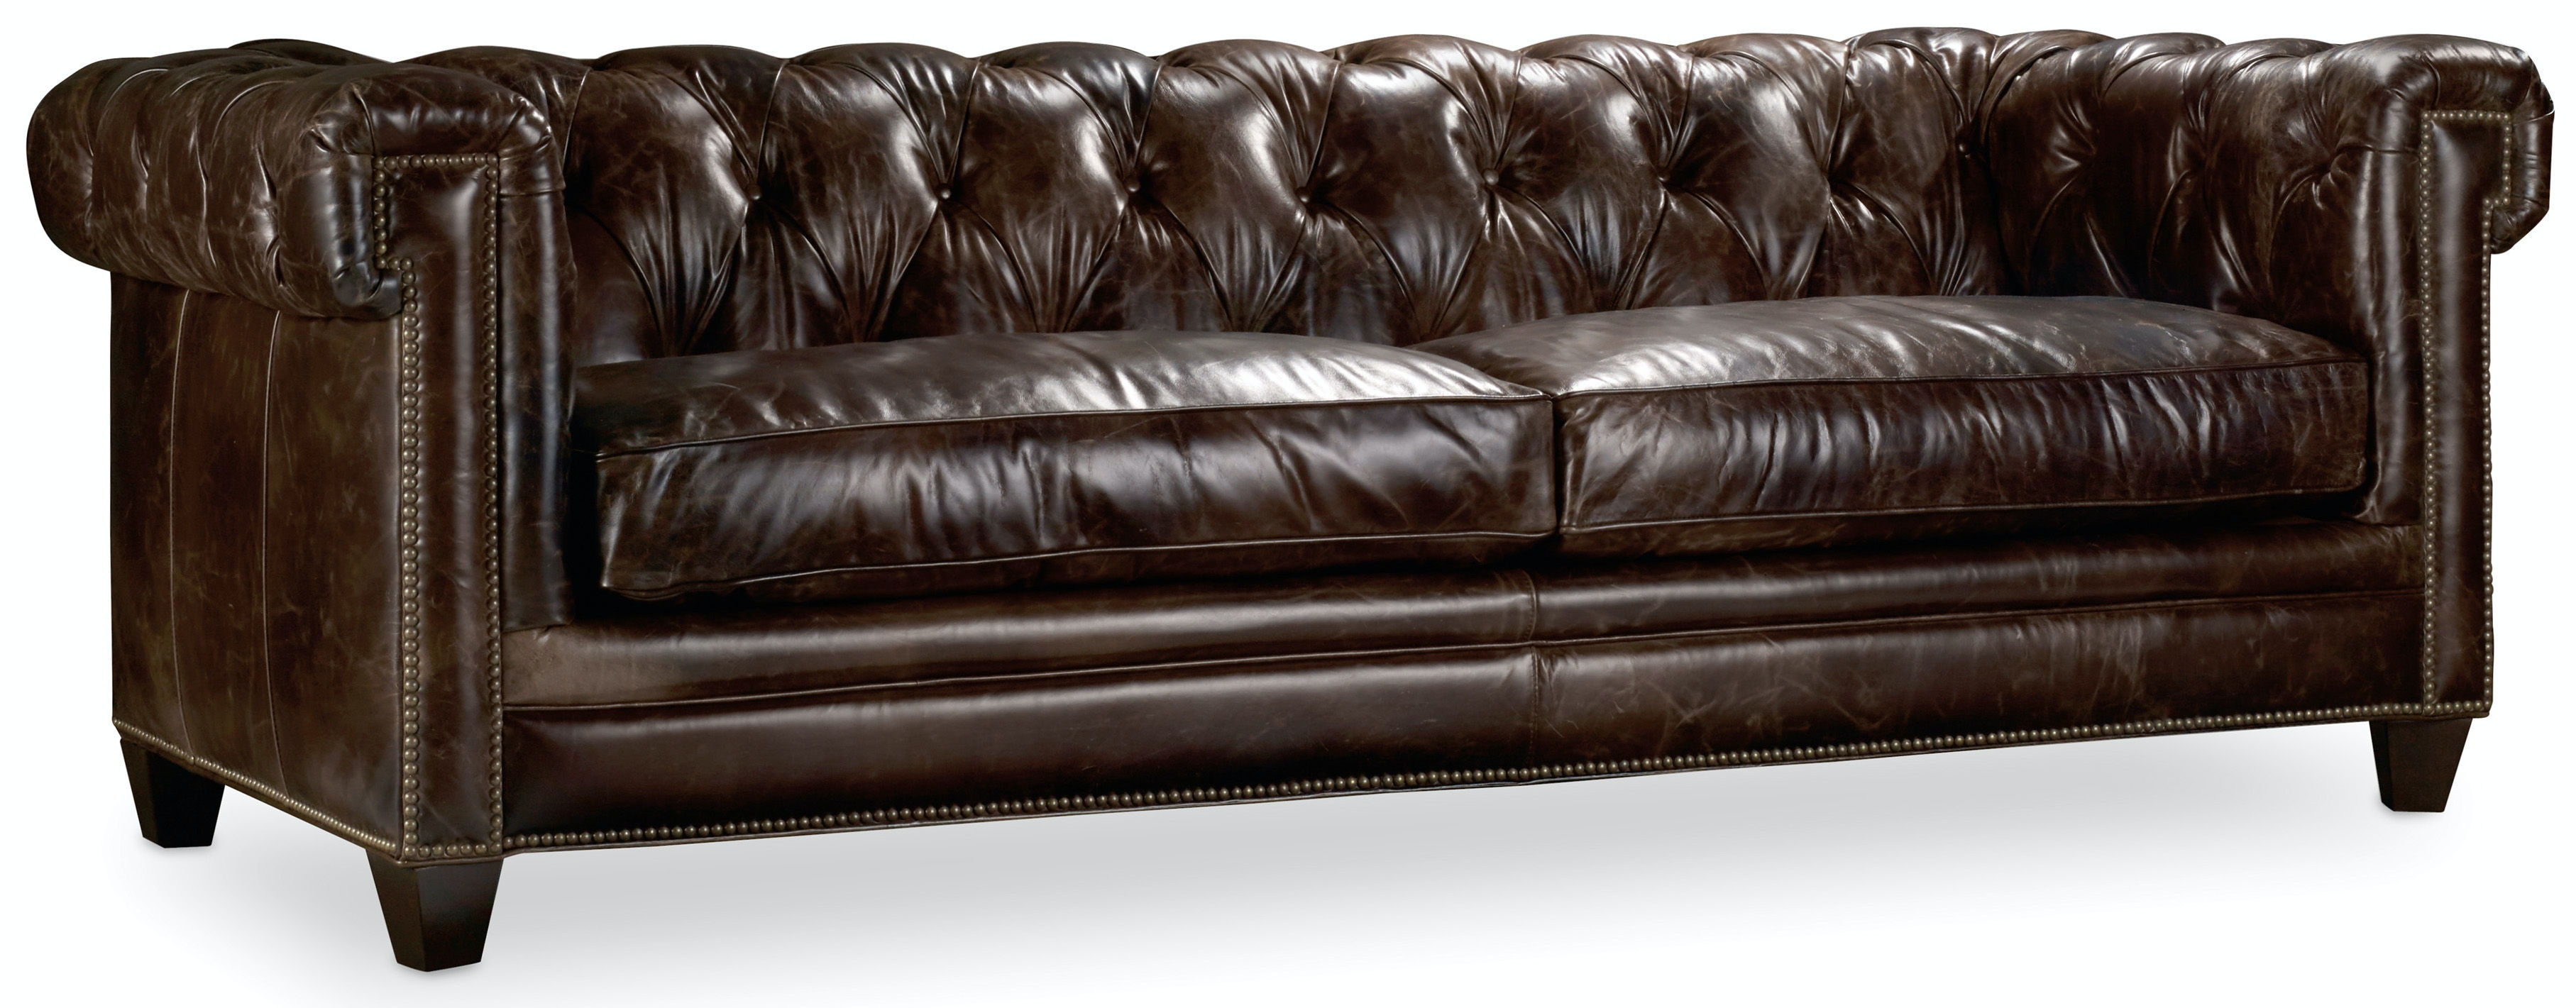 habitat chester sofa leather collection south london sofas compact brown